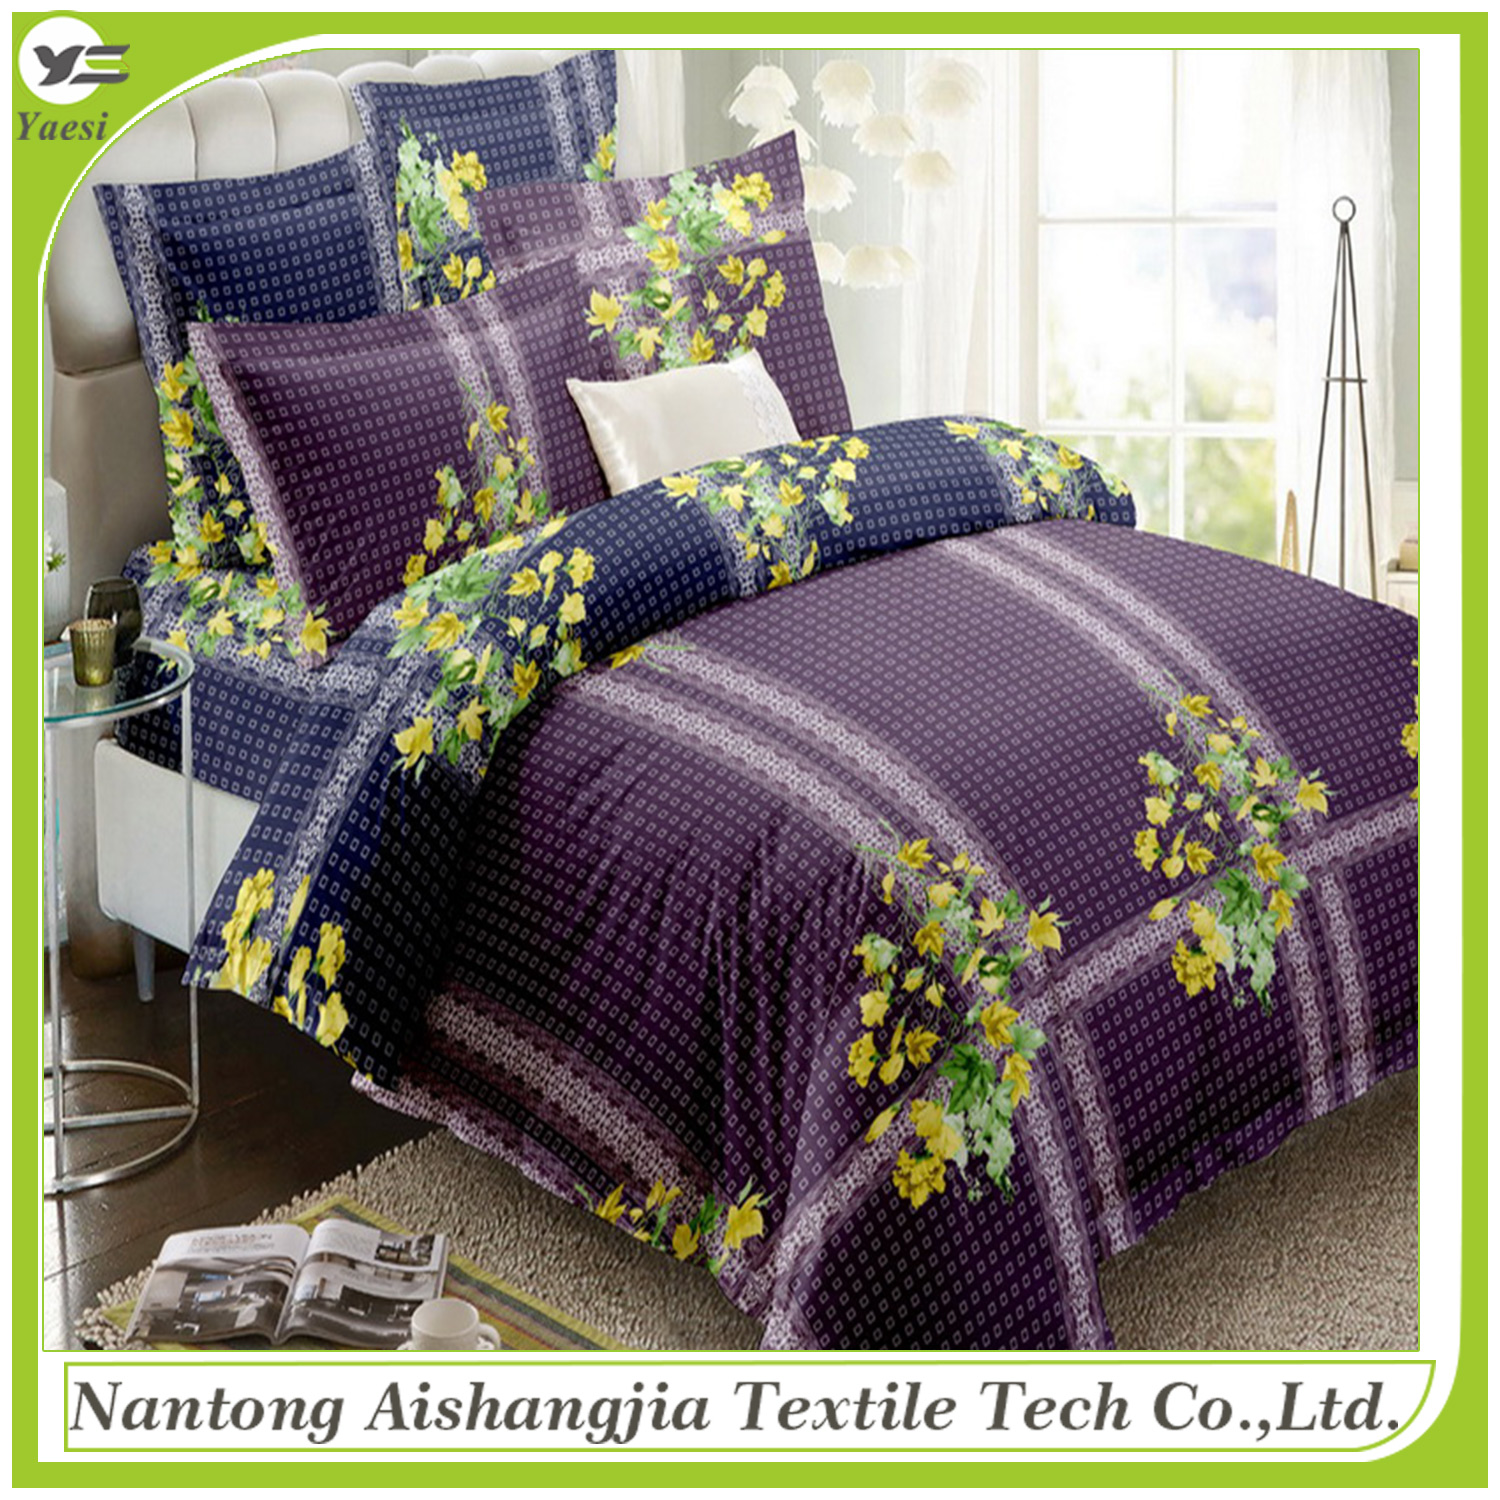 High quality machine grade bedding sets 100% cotton wholesale for xcmg spare parts